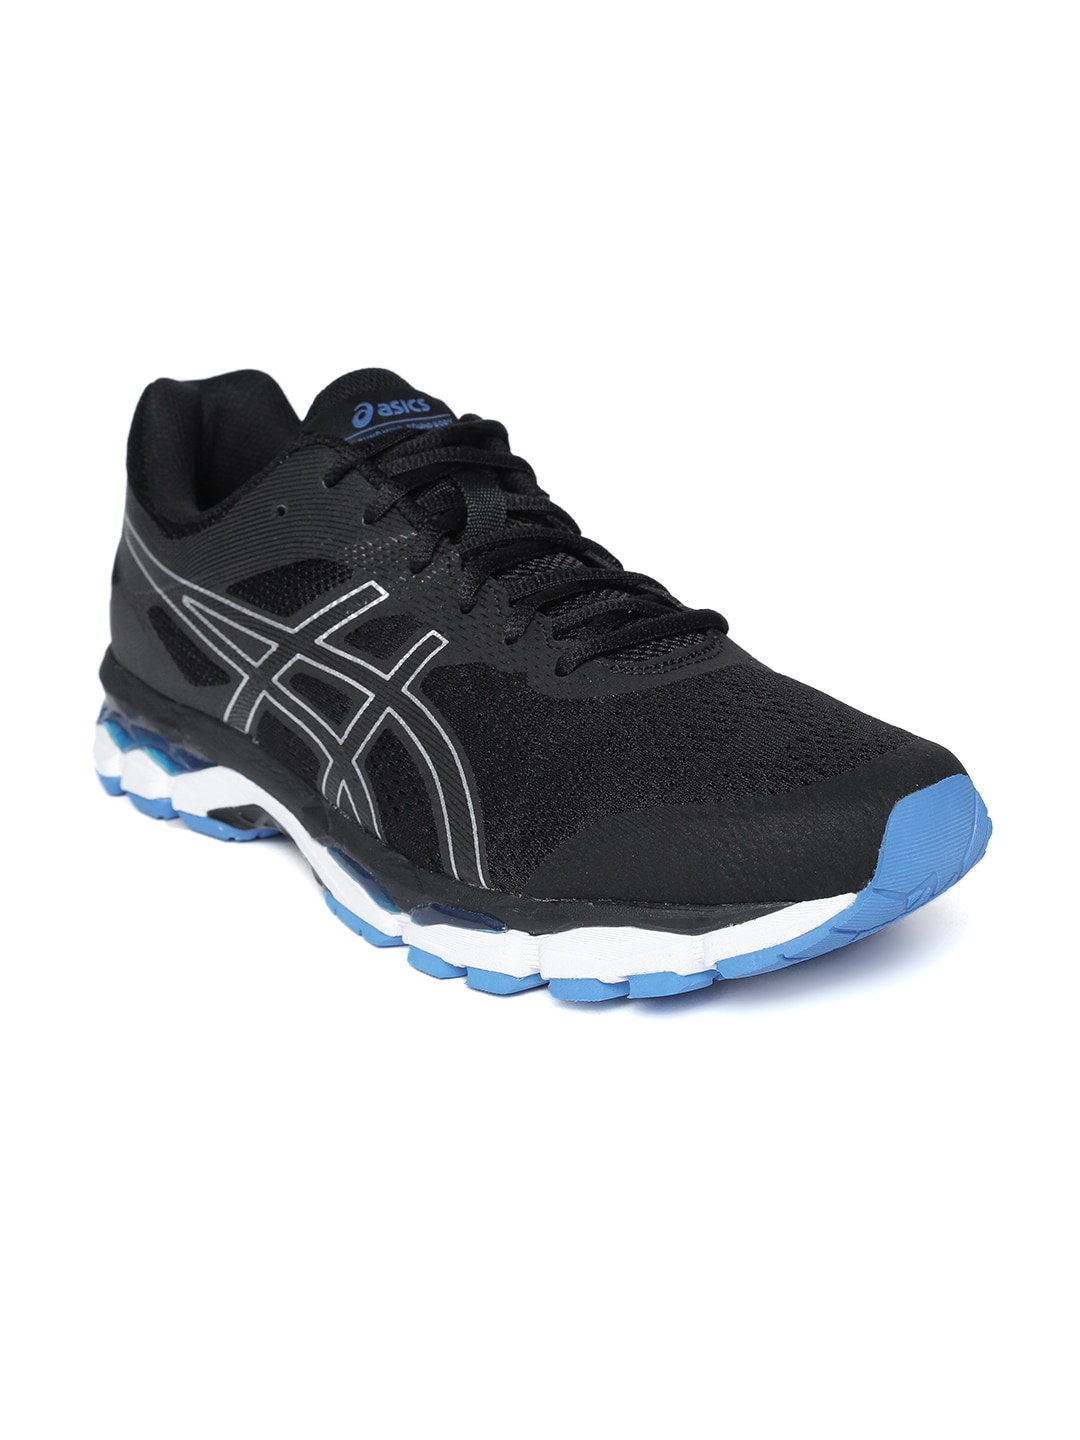 ec9e00def942 Asics Shoes - Buy Asics Shoes for Men and Women Online - Myntra